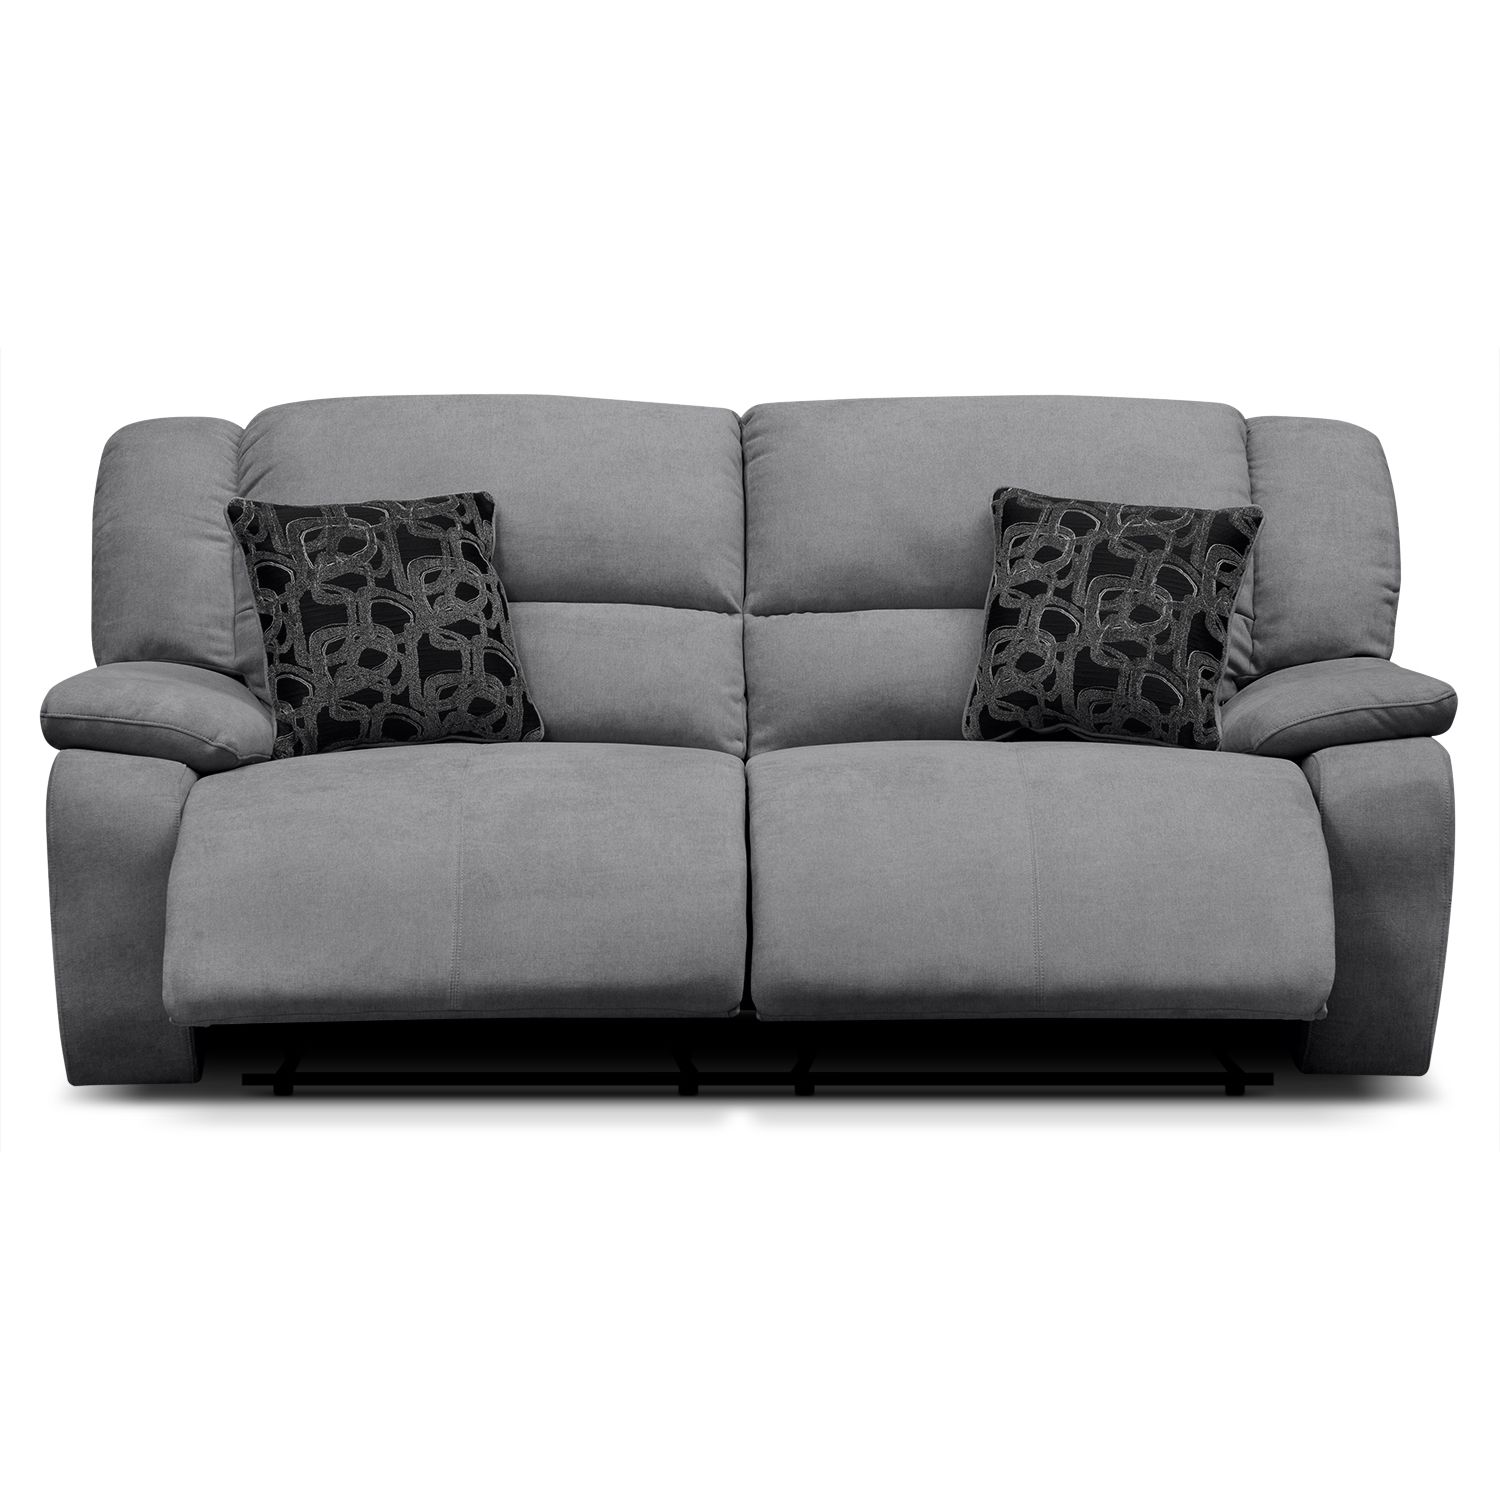 Favored Upholstery Reclining Fabric Gray Sofa For Two Seat With Cushions As Decorate Modern Living Room